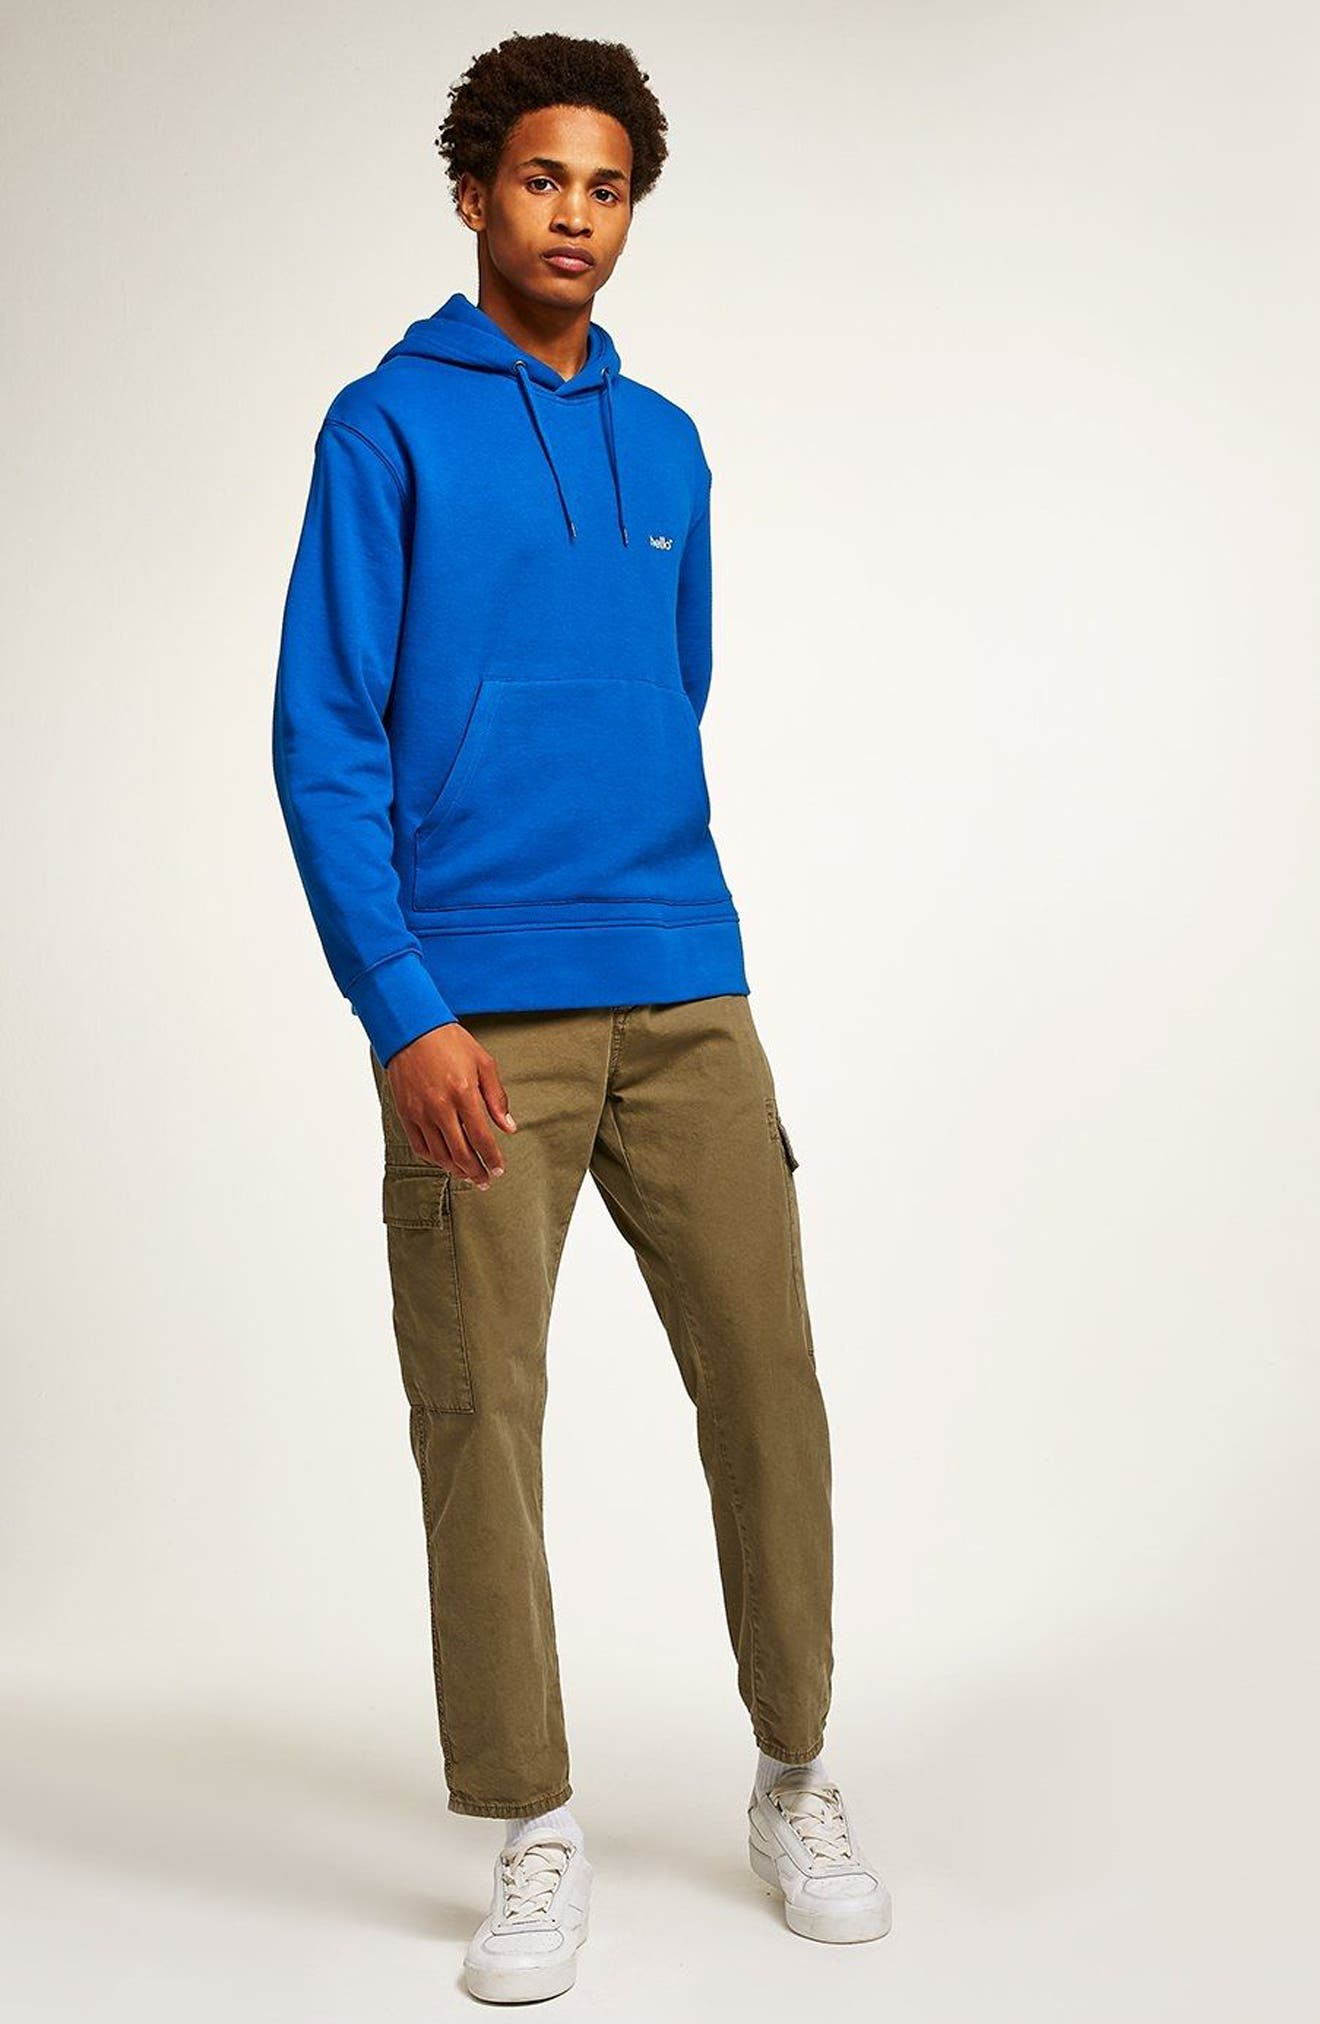 Classic Fit Tristan Hello Embroidered Hoodie,                             Alternate thumbnail 5, color,